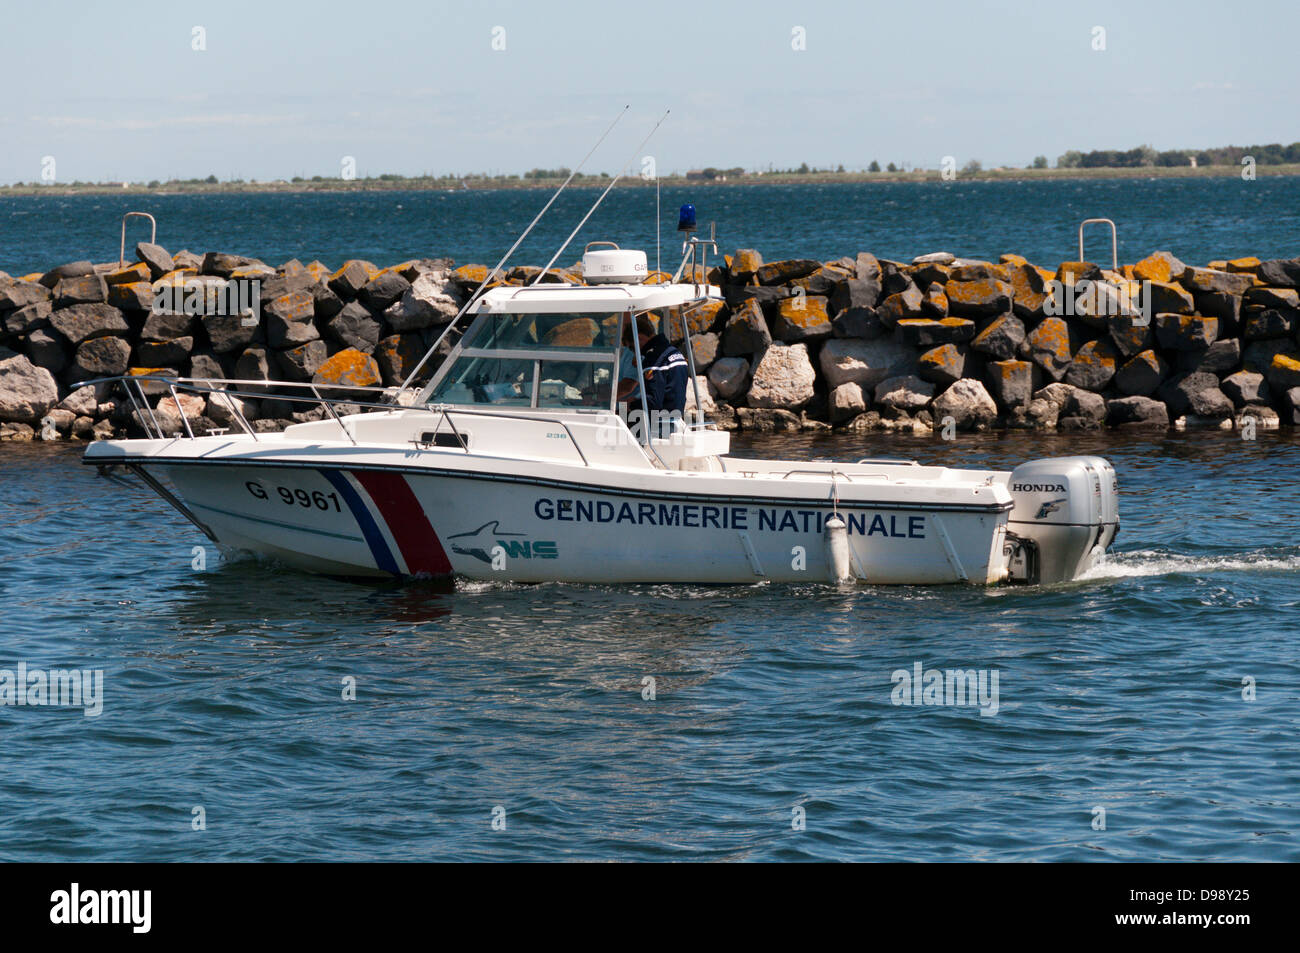 A boat of the French Gendarmerie Nationale leaving Marseillan harbour. - Stock Image